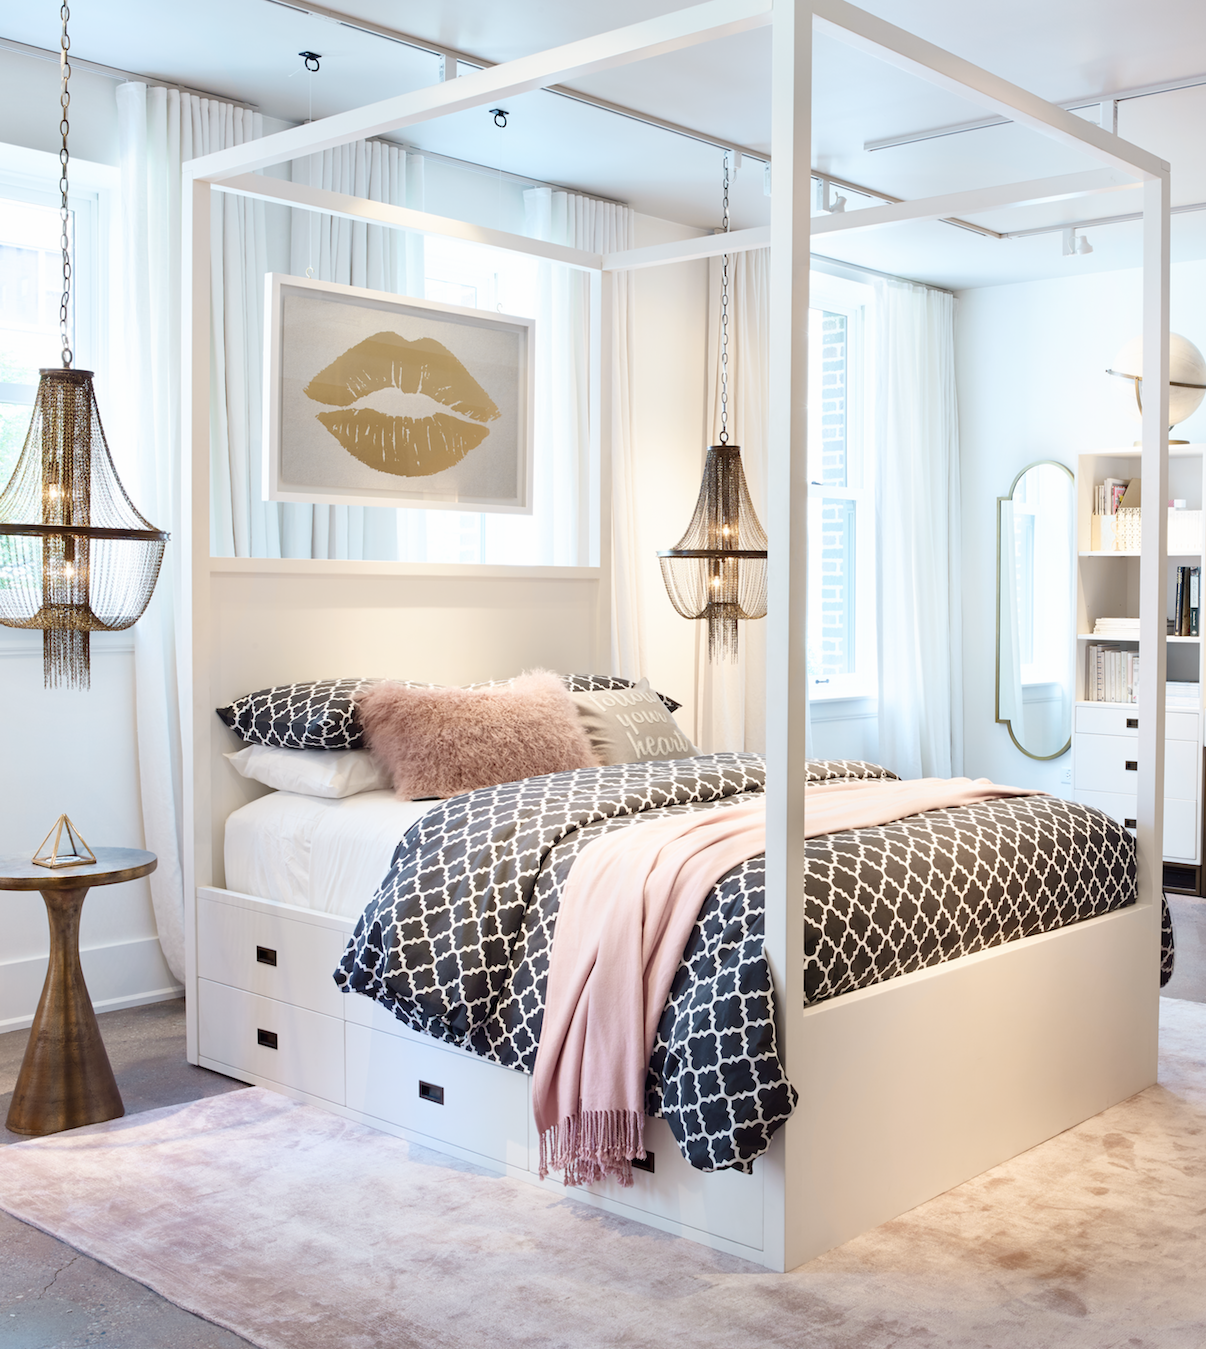 Rh chicago the gallery at the 3 arts club home sweet Bedroom ideas for teens